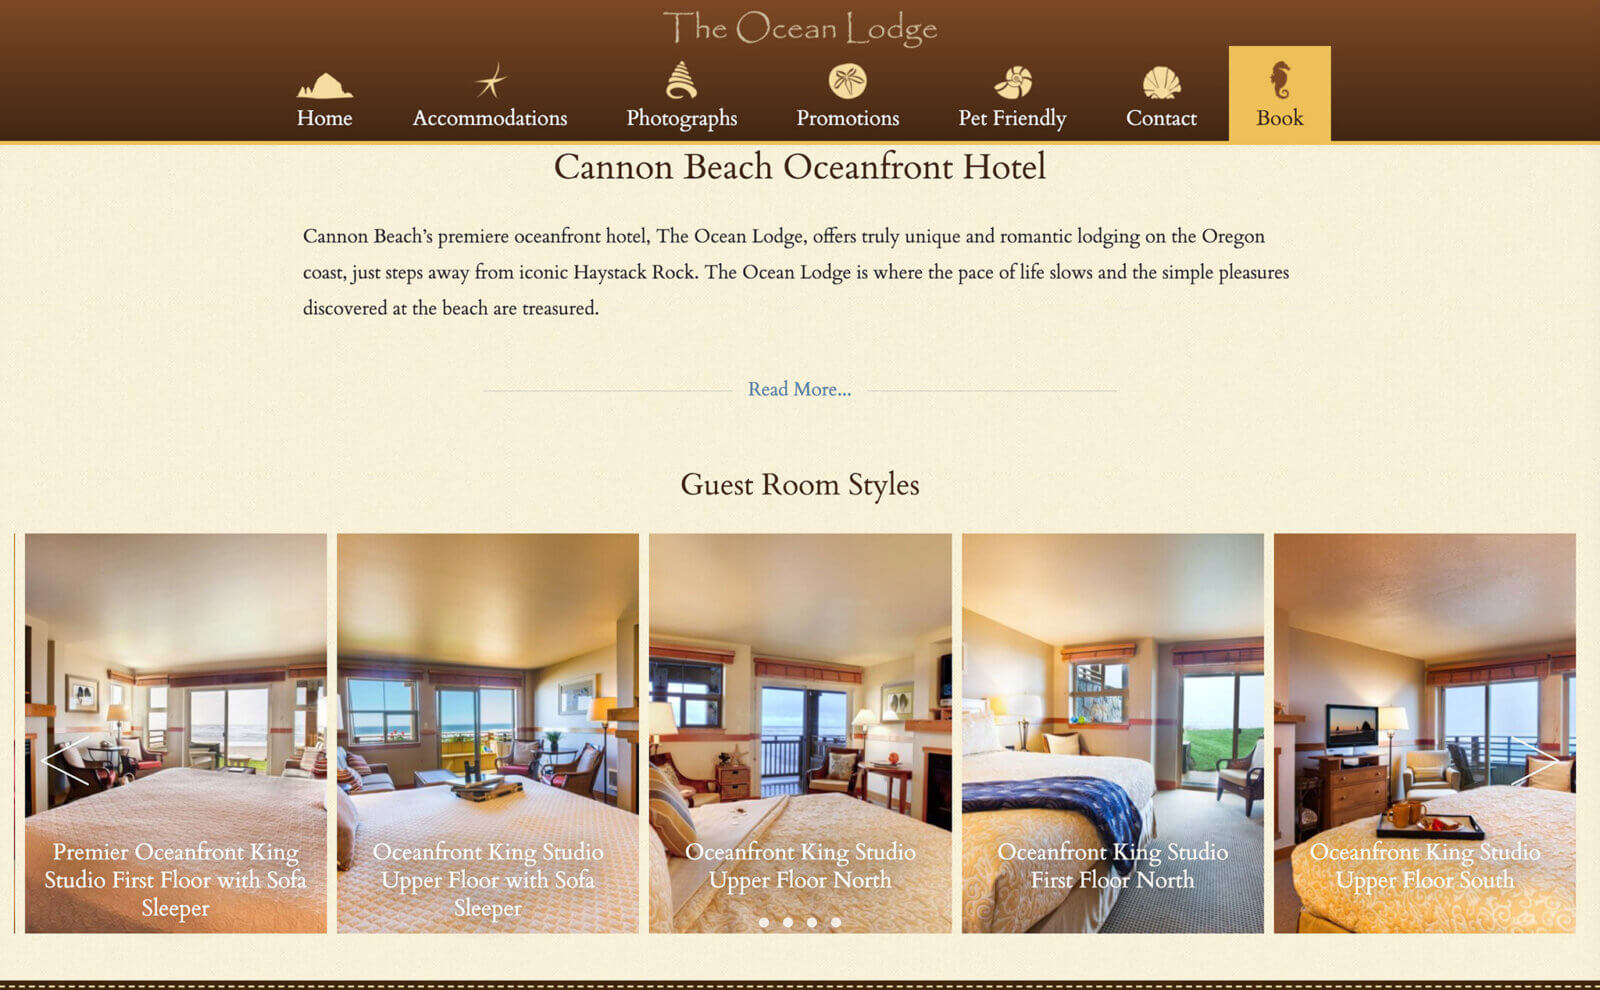 The Ocean Lodge website